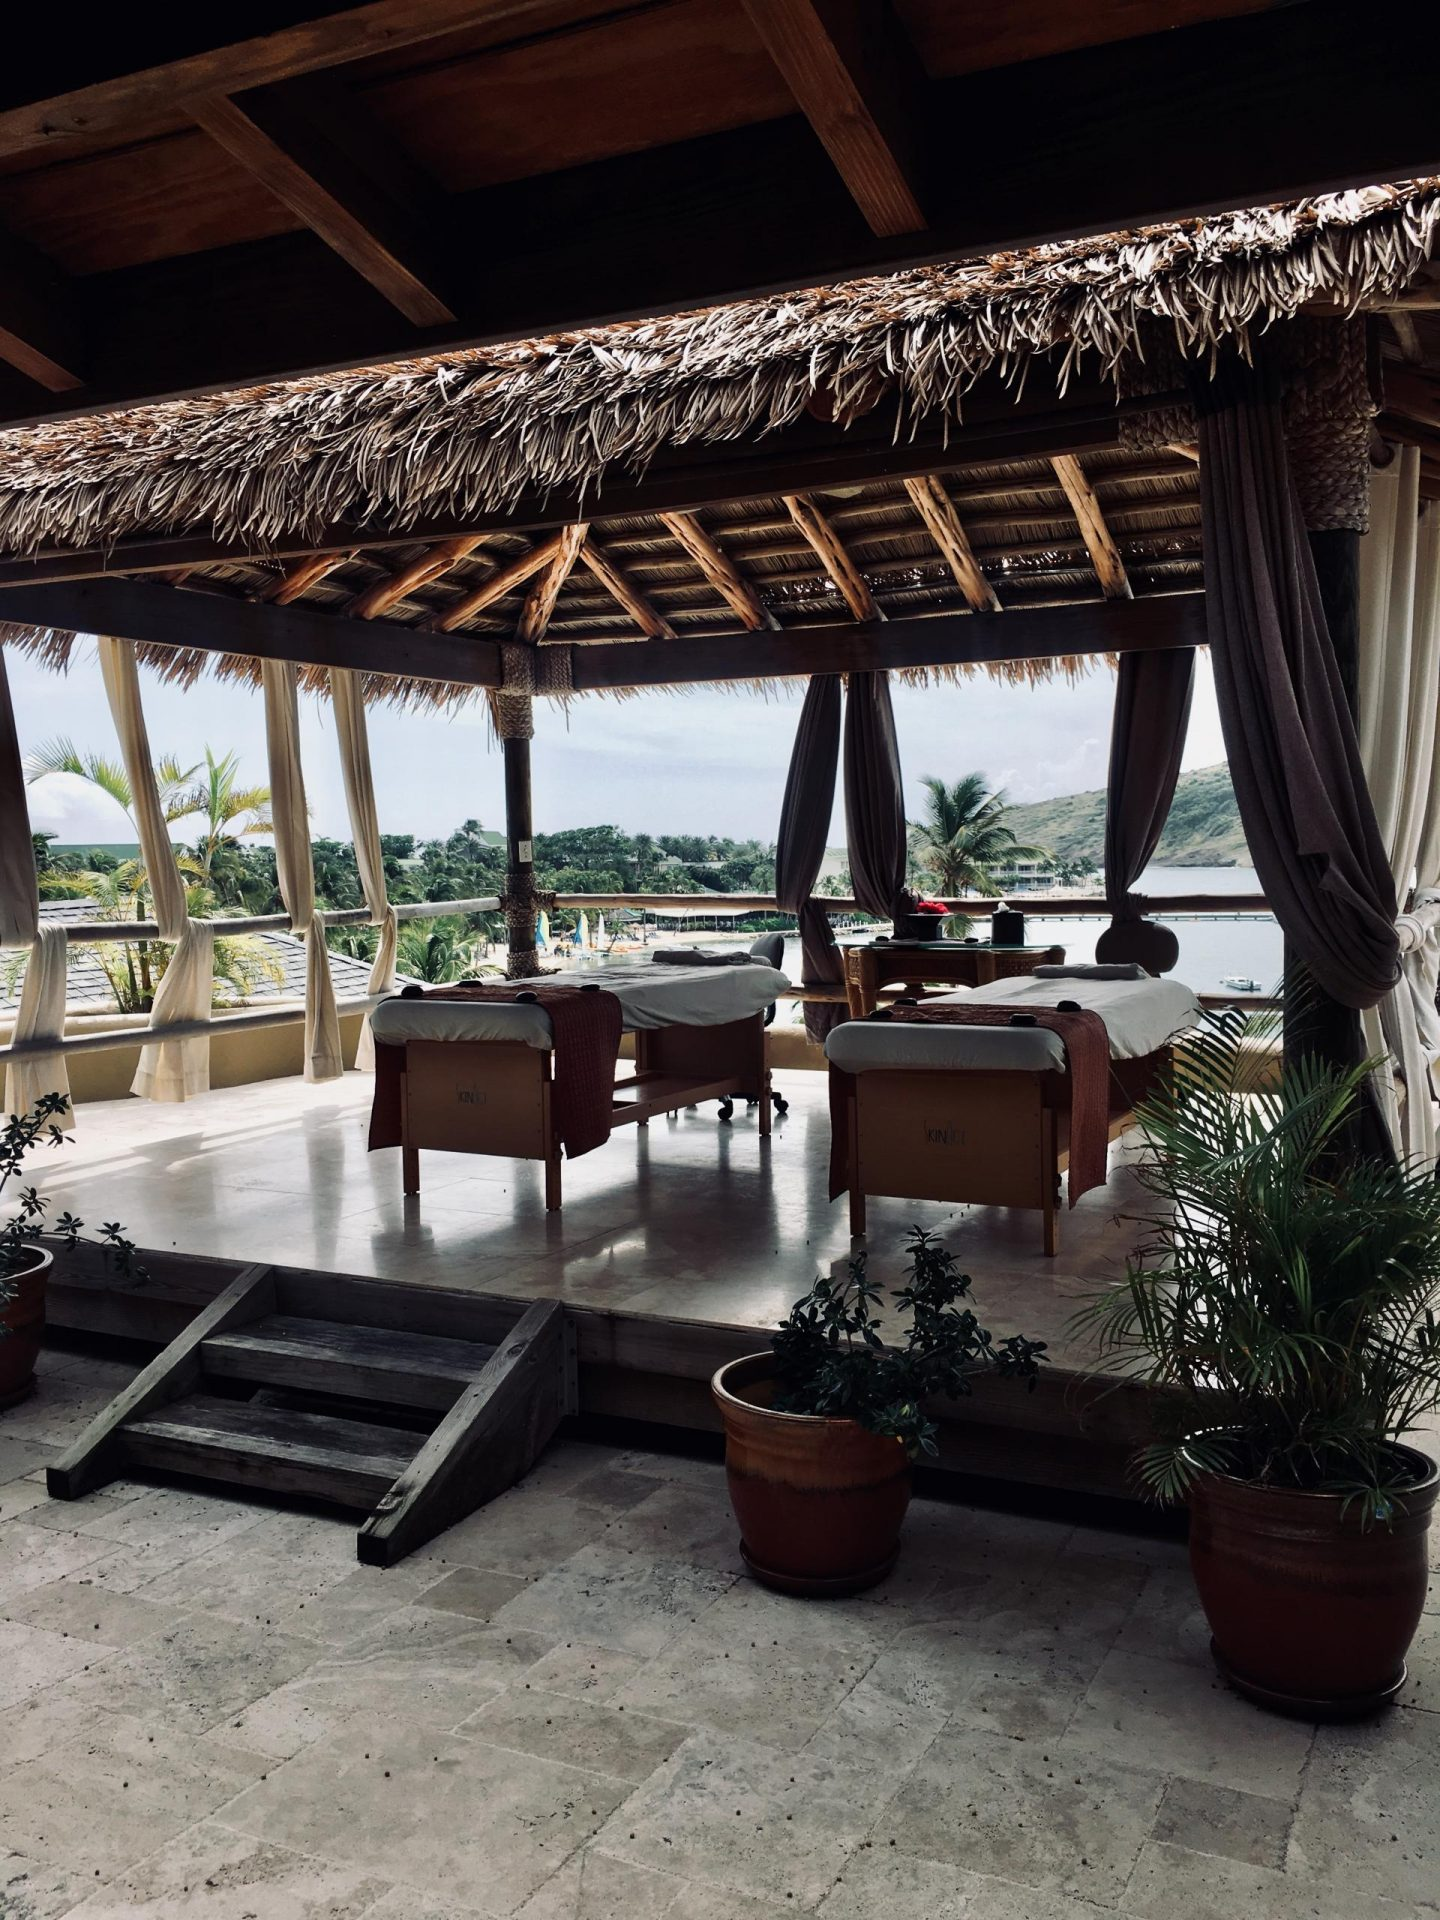 Tranquility Body & Soul Spa in Antigua